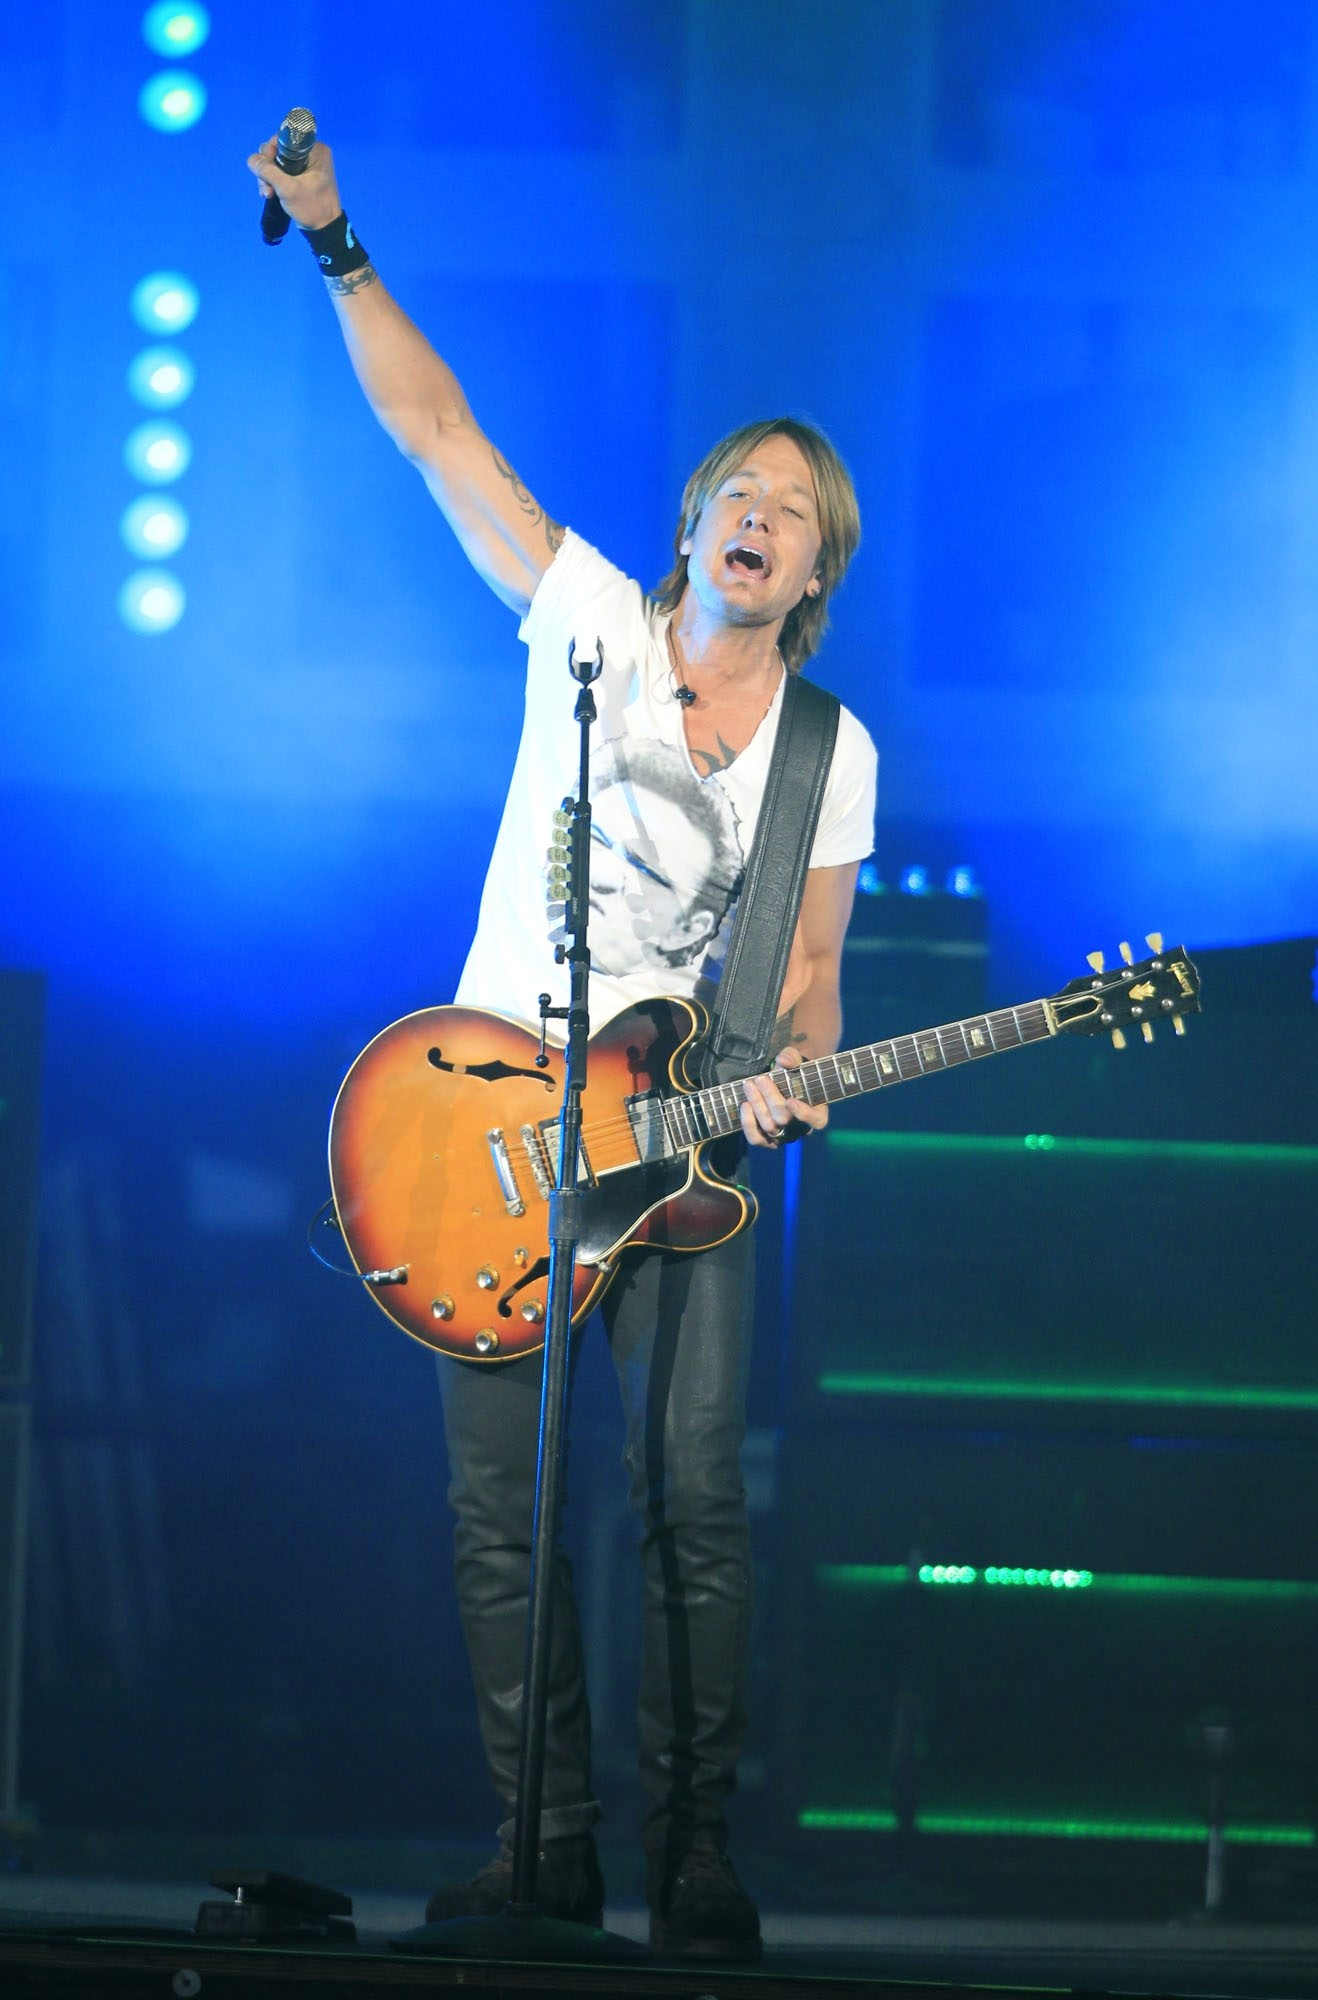 Keith Urban acknowledges the audience at Darien Lake Friday night. See a photo gallery of the concert at BuffaloNews.com.